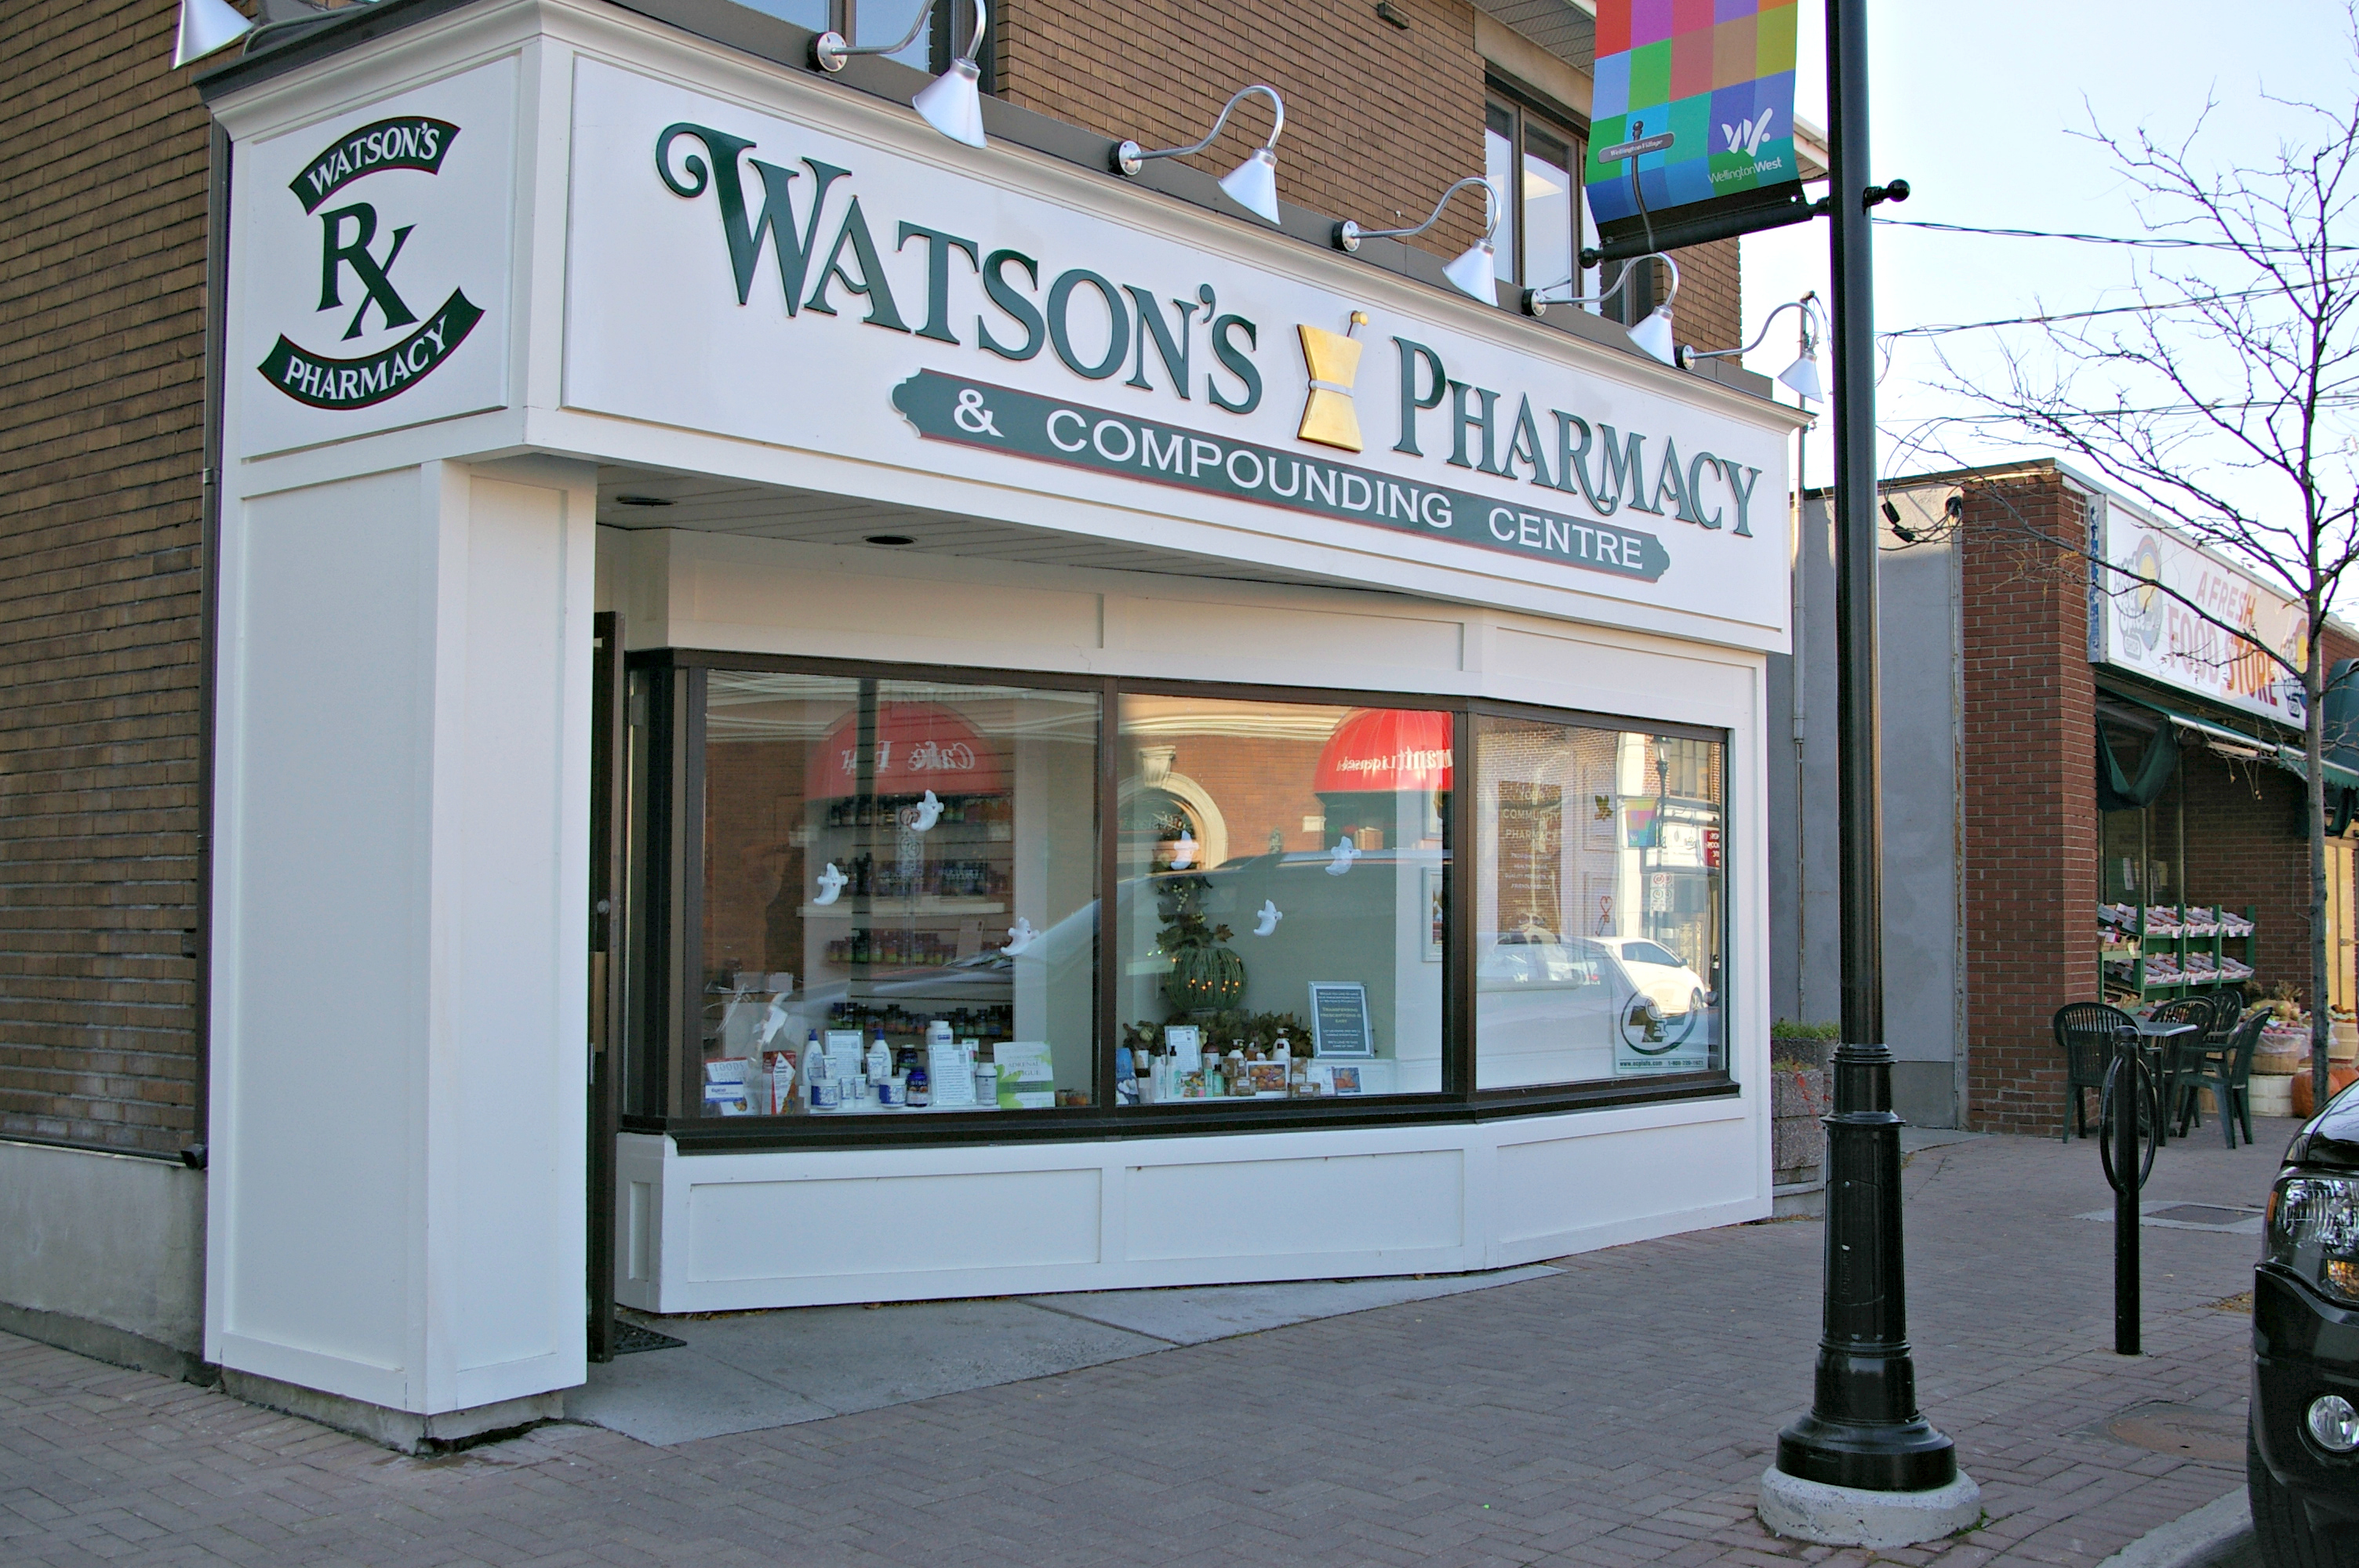 Location & Hours | Watson's Pharmacy and Compounding Centre